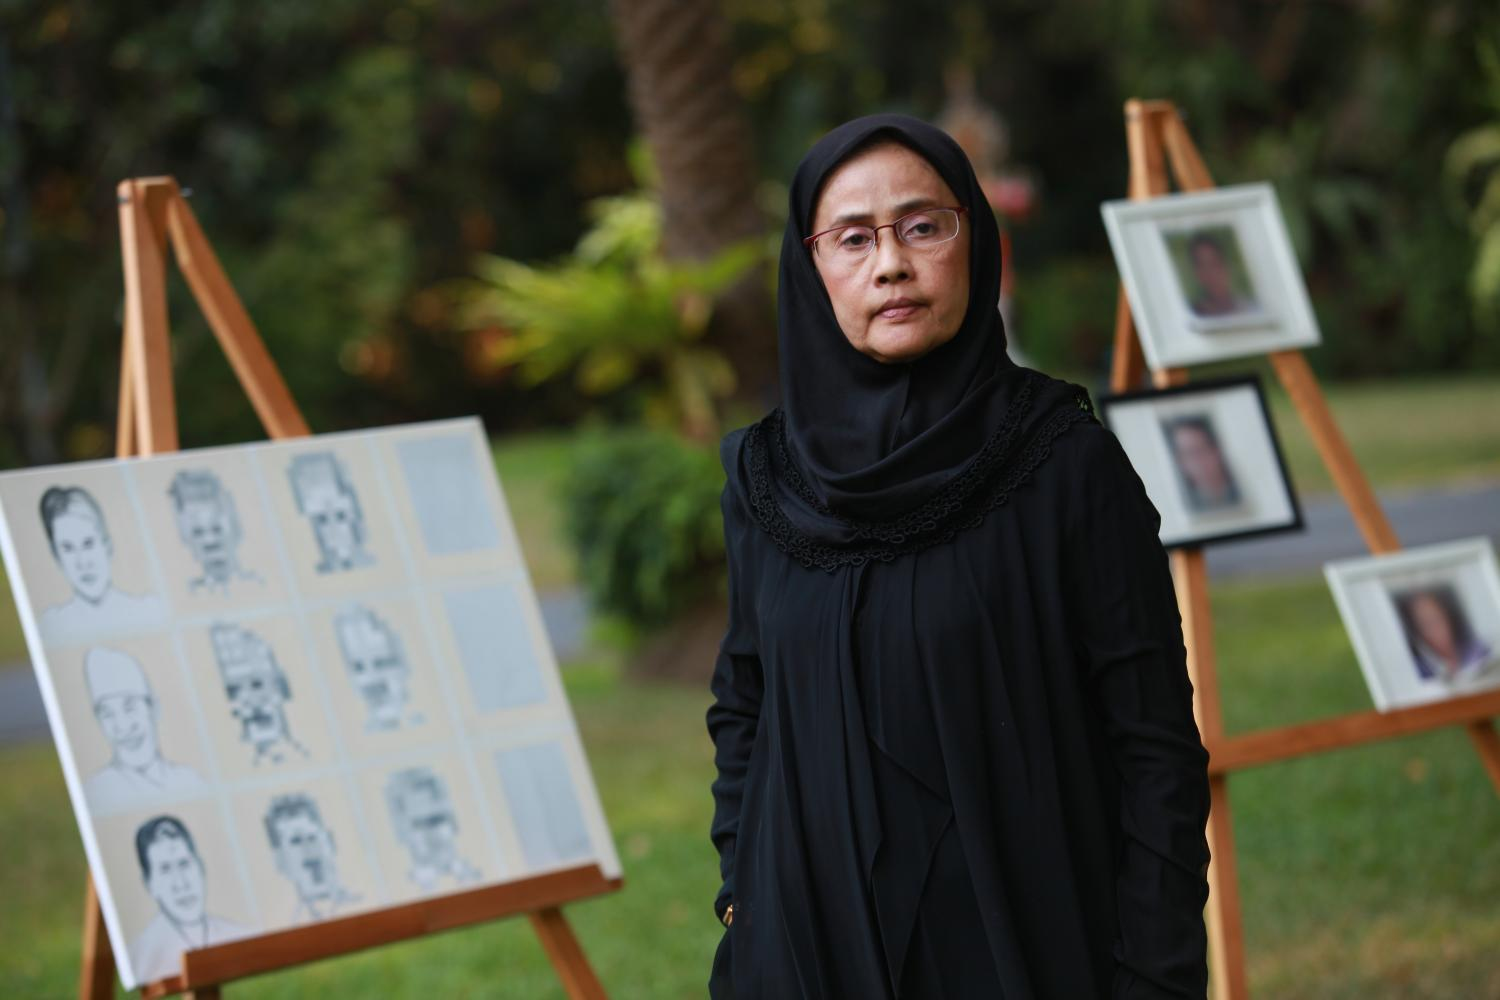 Former national human rights commissioner Angkhana Neelapaijit posed for a picture at an art exhibition under the theme 'Voice From the Disappeared' as the Dutch embassy last year marked the 15th anniversary of the March 2004 disappearance of her husband, Muslim lawyer Somchai Neelapaijit. (Bangkok Post file photo)